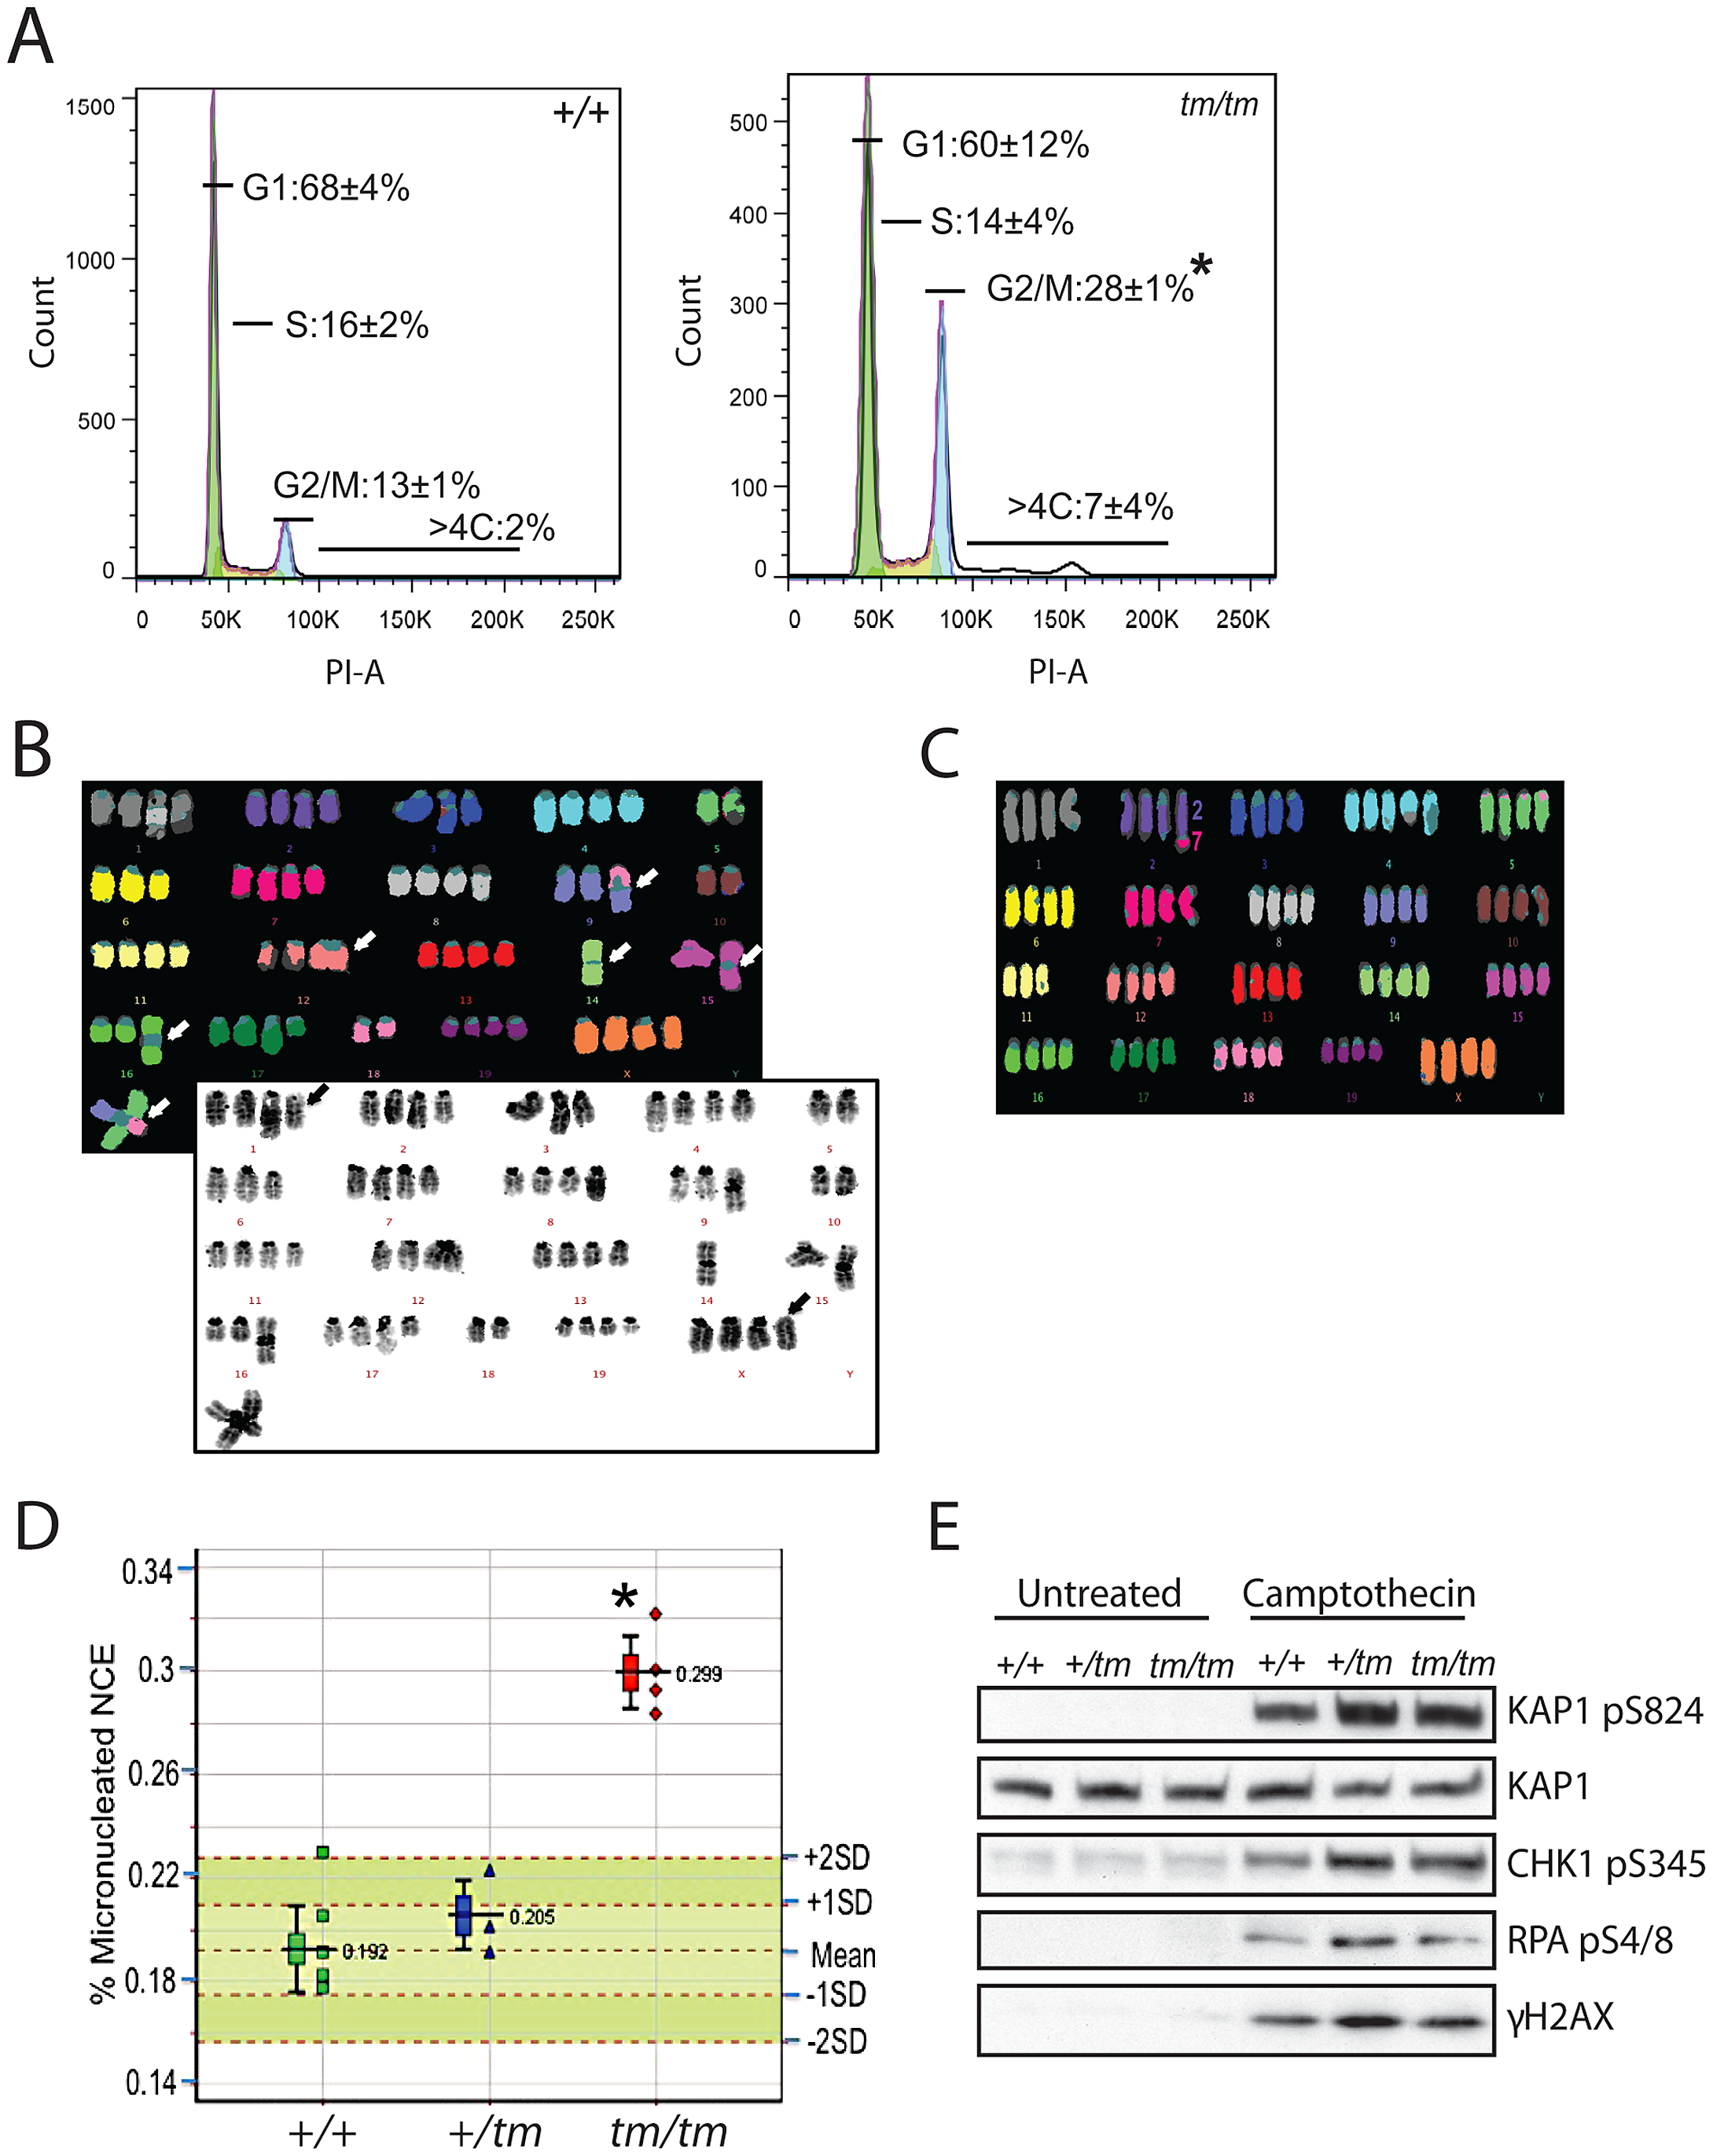 Genomic instability is associated with abnormal ploidy of <i>Cenpj<sup>tm/tm</sup></i> cells rather than an impaired DNA damage response.